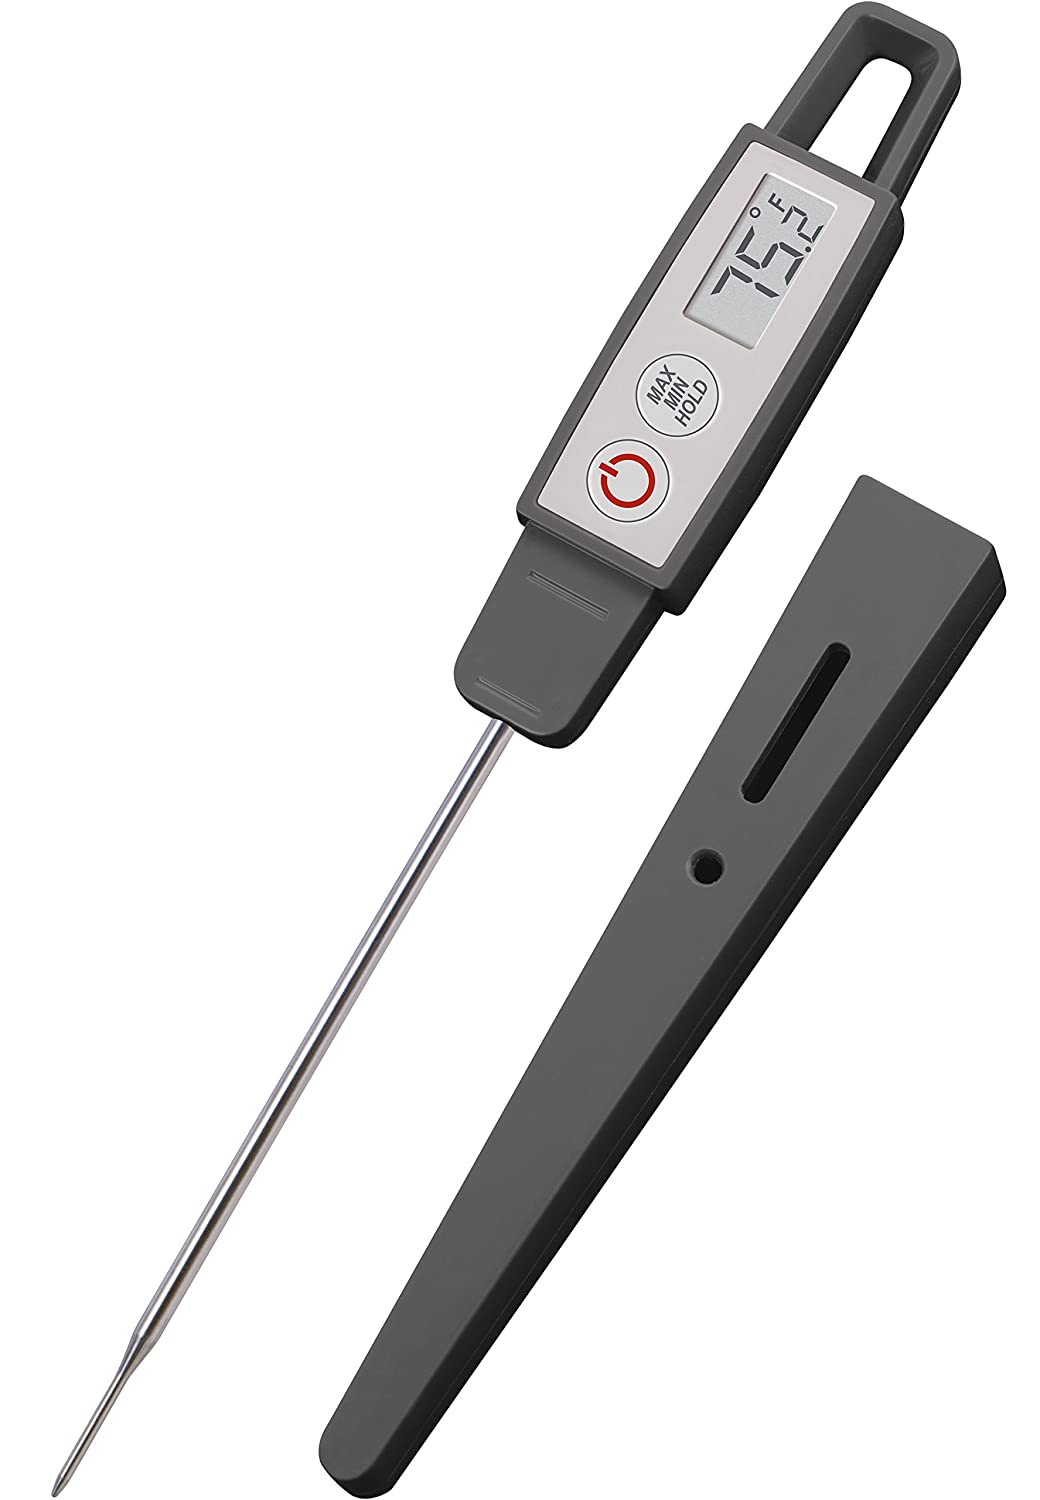 Regular, Chipotle Lavatools PT09C Commercial Grade Digital Kitchen Instant Read Meat Thermometer